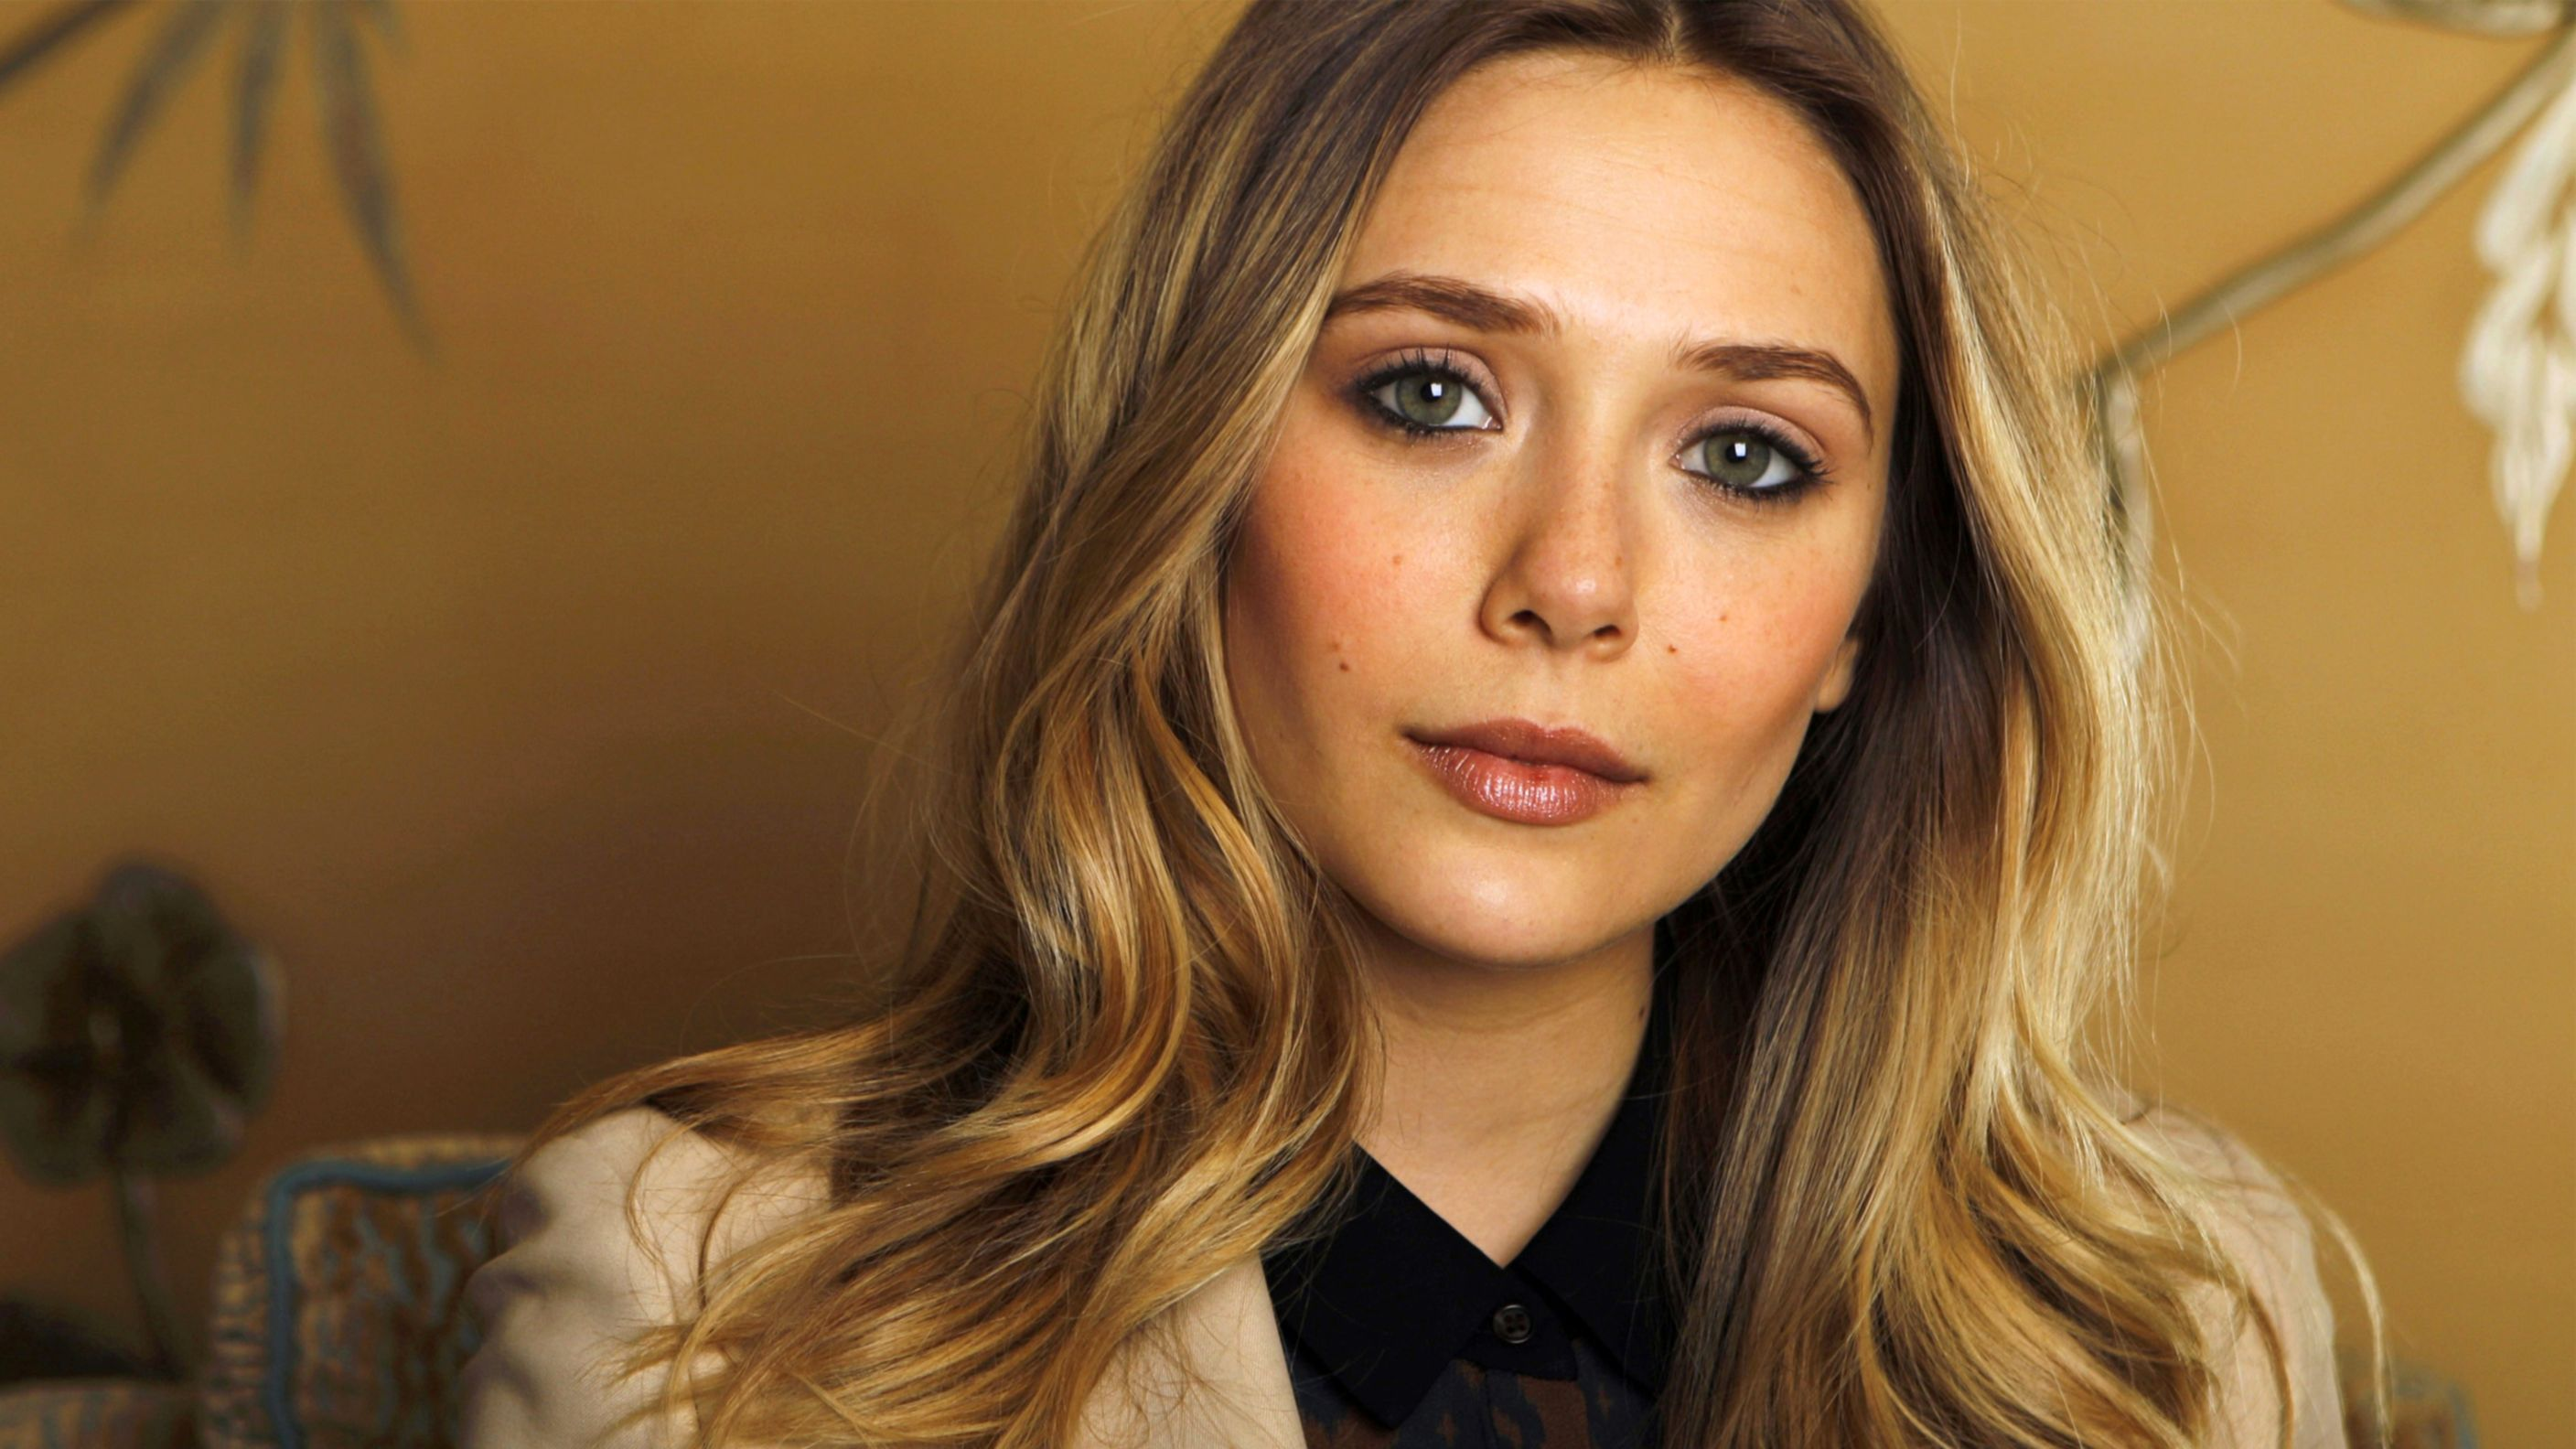 Download free HD Actress Elizabeth Olsen Hd Wallpaper, image